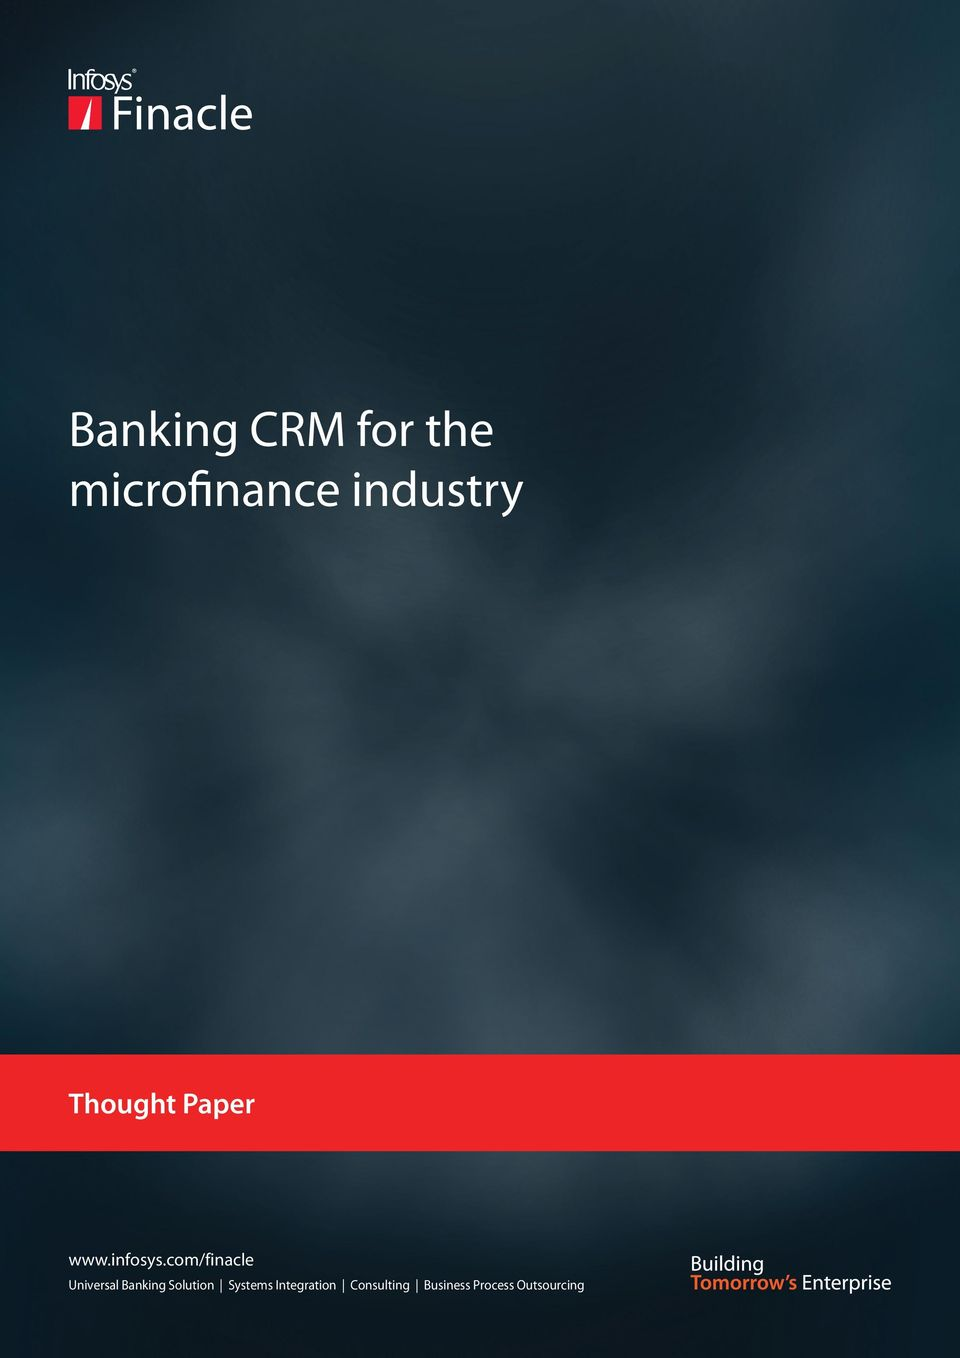 com/finacle Universal Banking